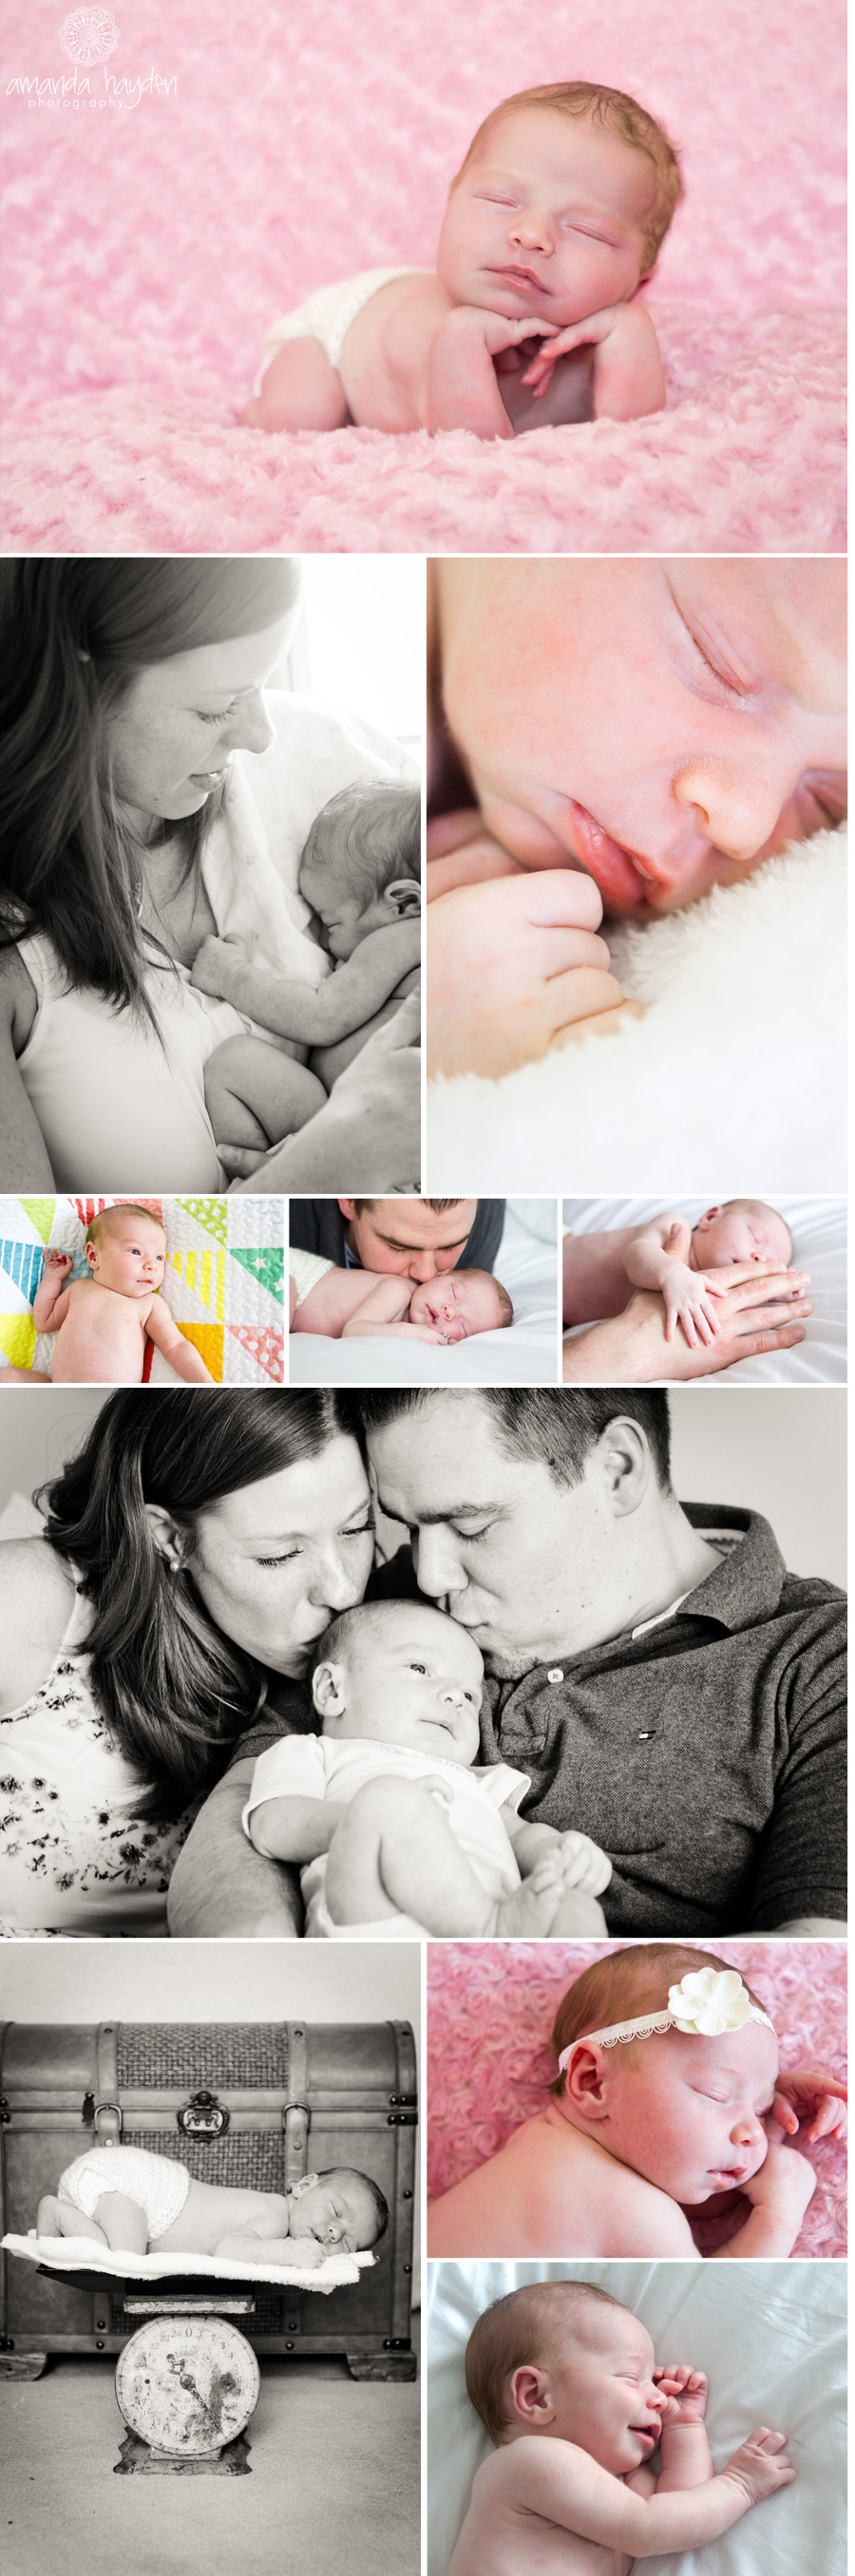 8 day old newborn baby girl ottawa newborn photographer